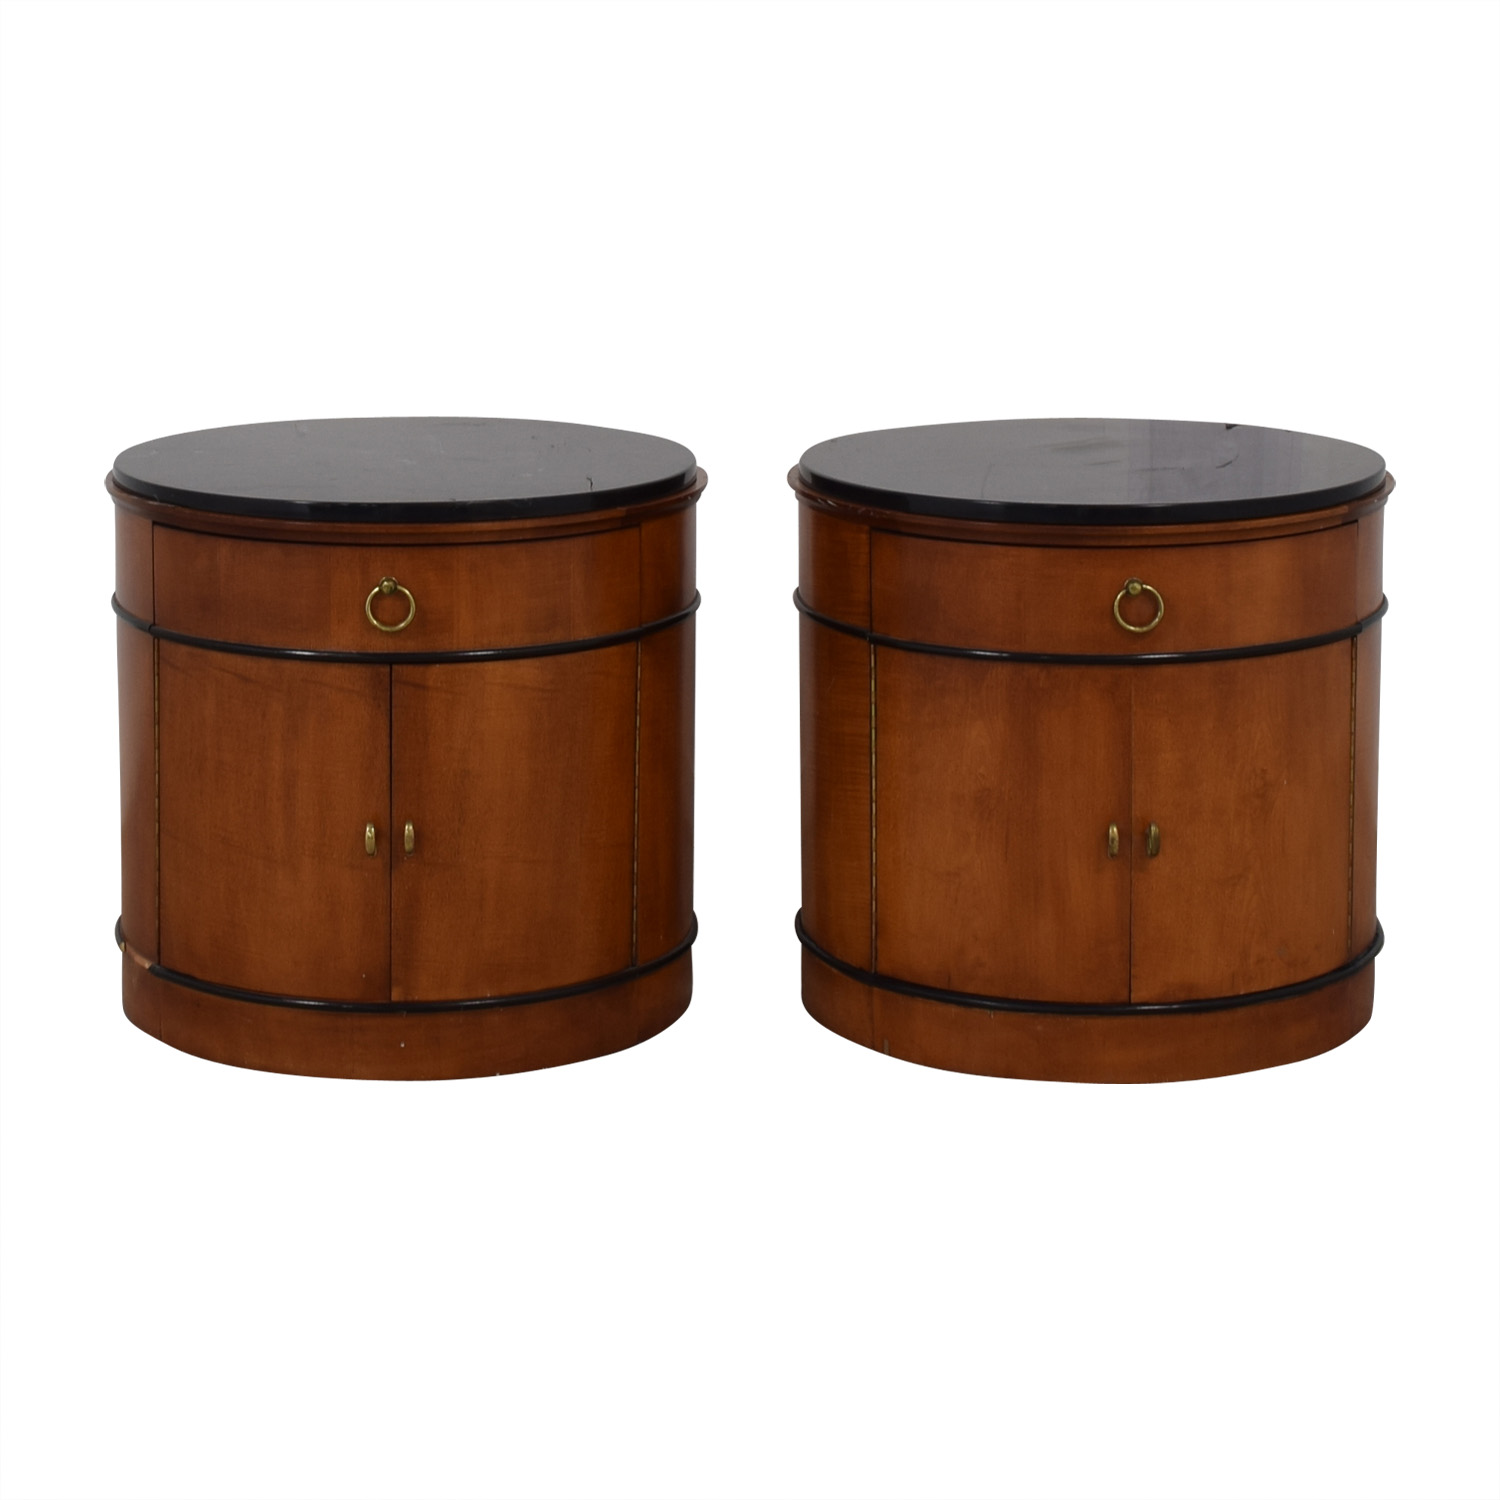 National Mt. Airy National Mt. Airy Round Drum End Tables dimensions